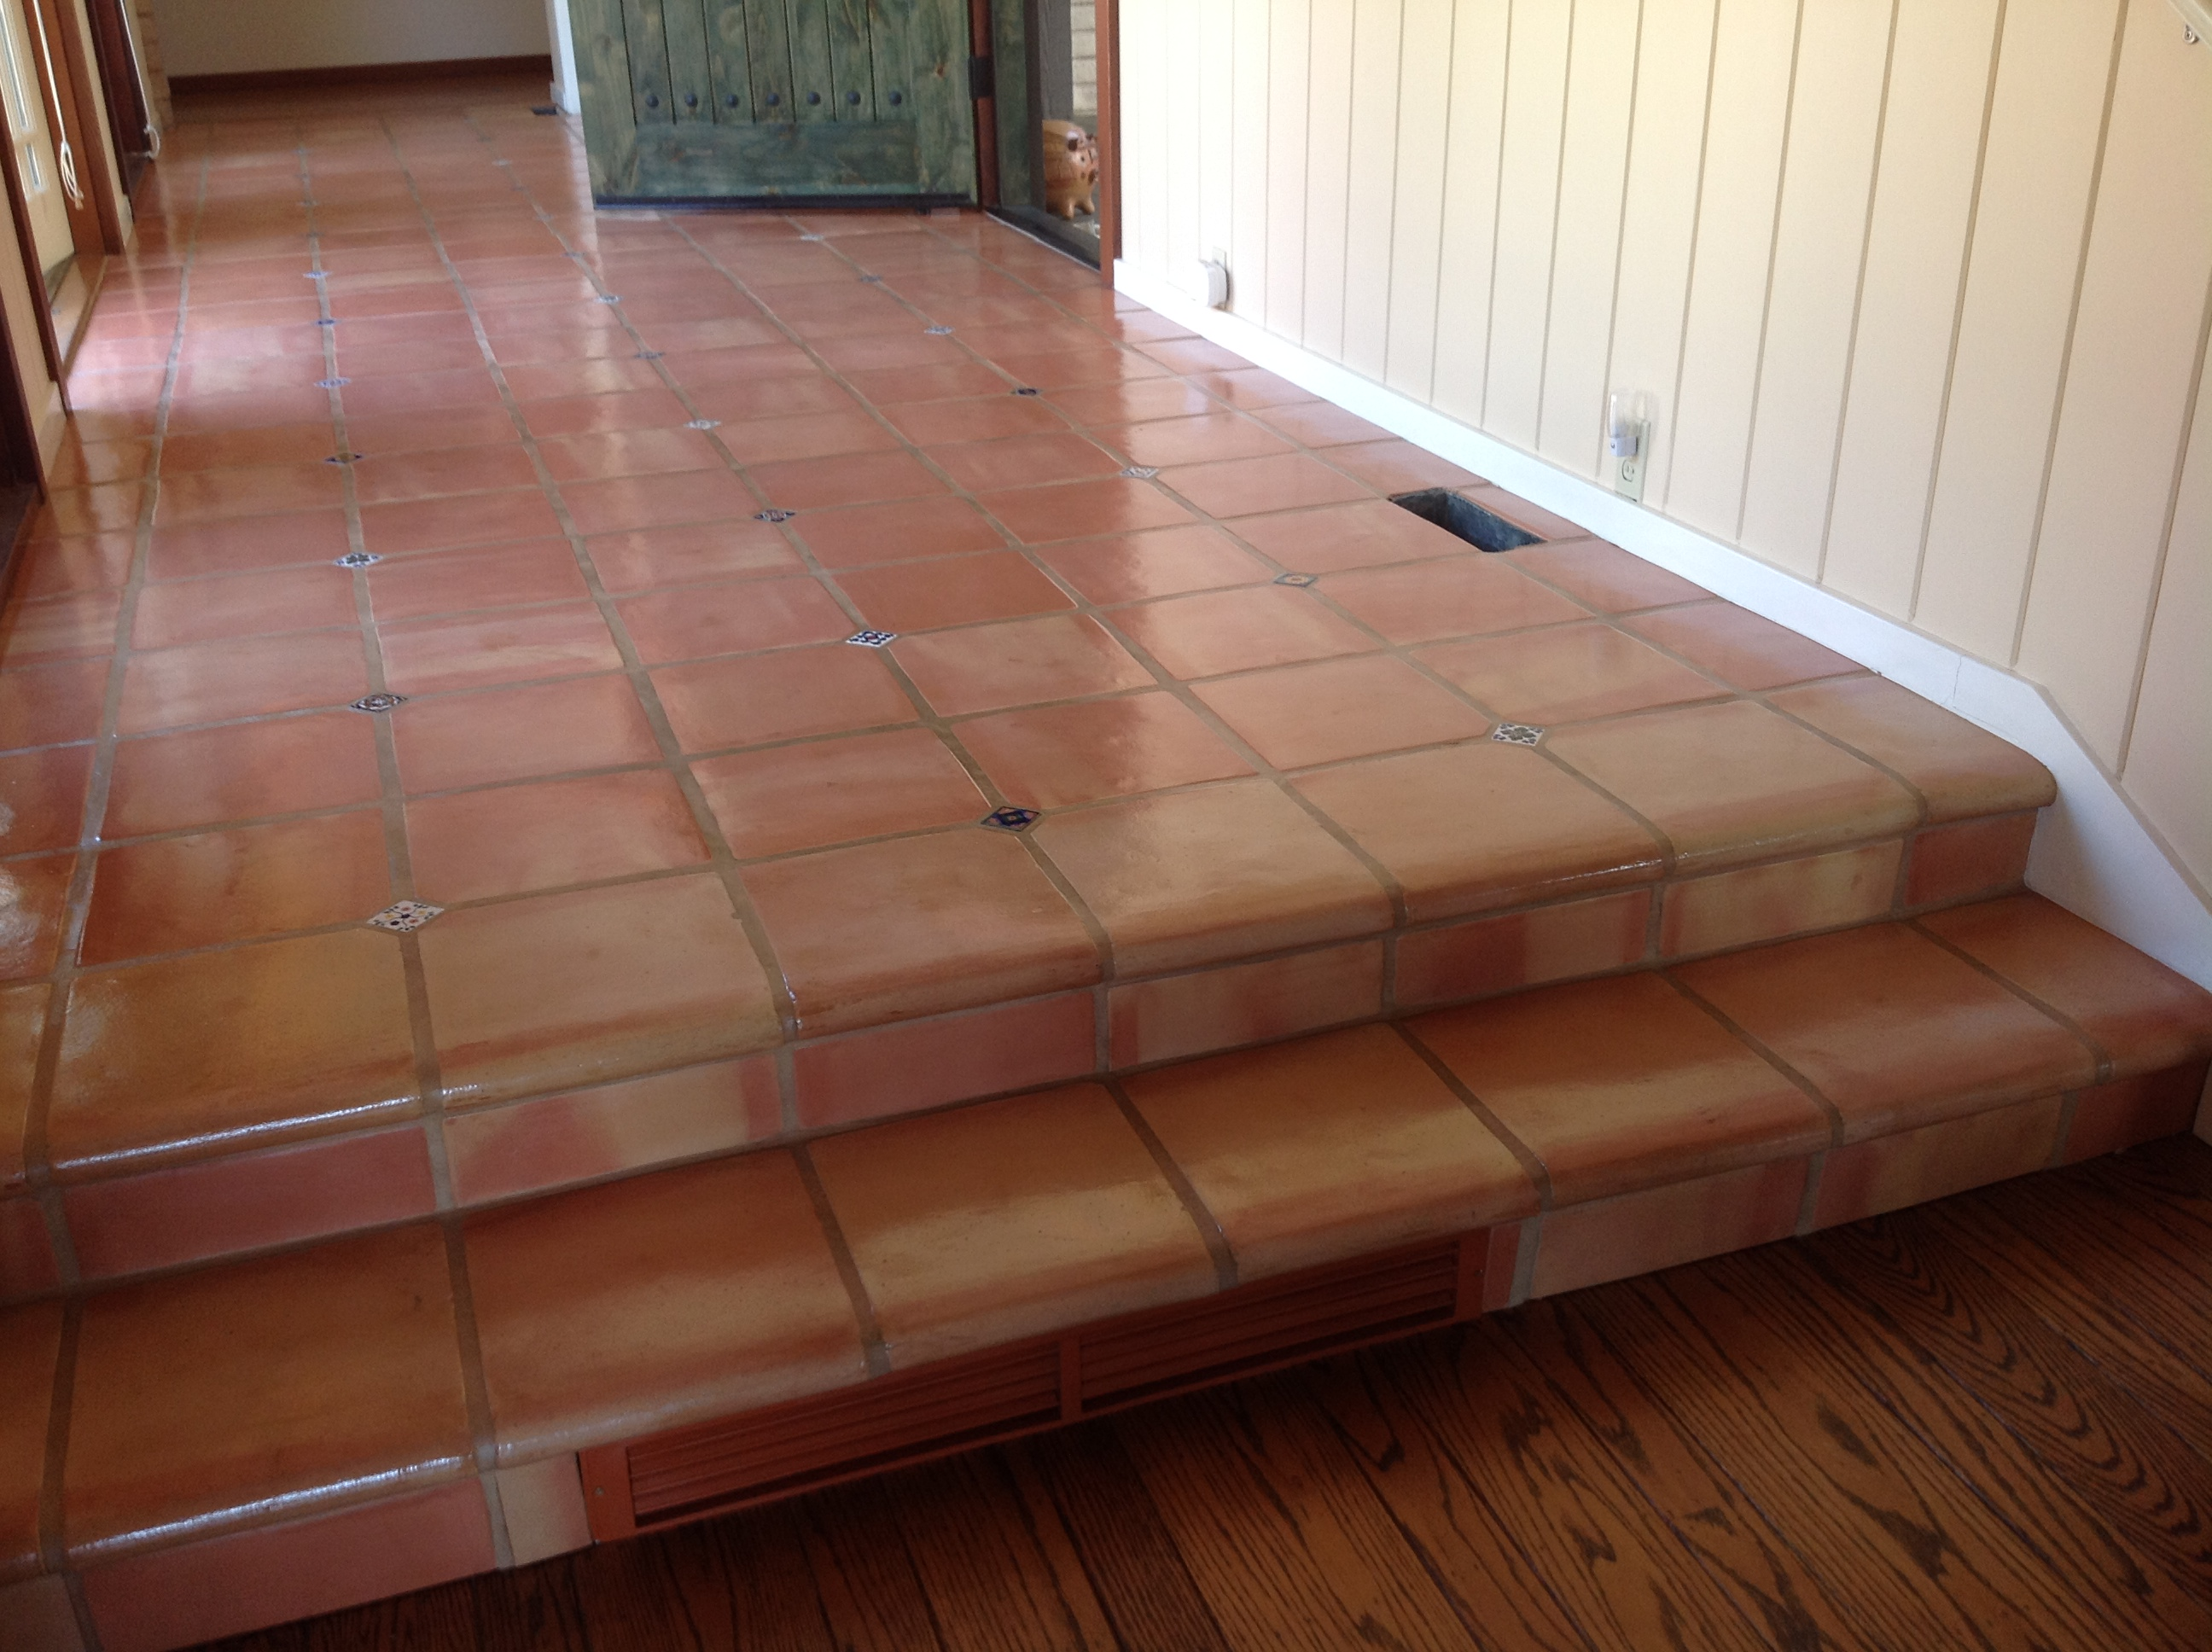 Seal Tile Floor >> Spruce up those Saltillo Tiles from Dull to Shine in no Time